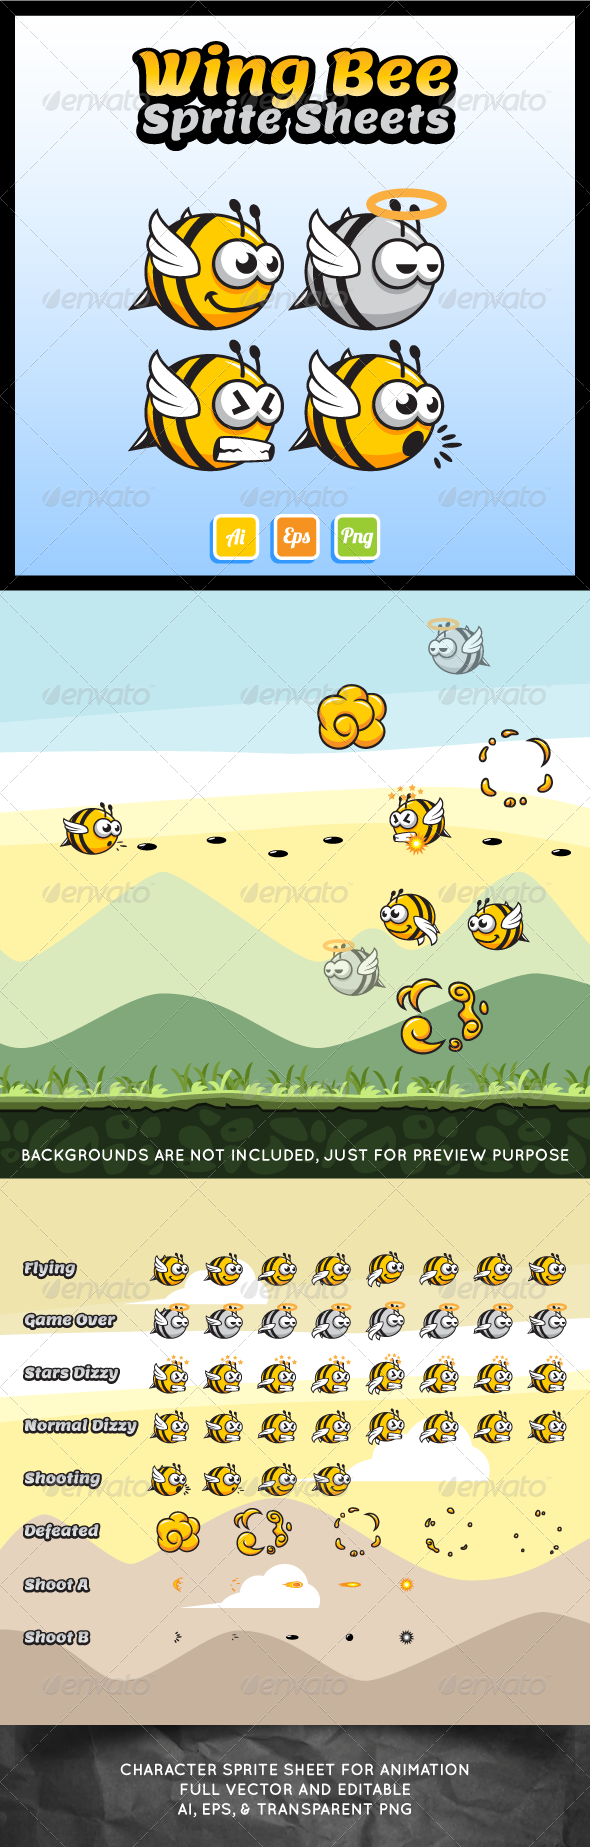 GraphicRiver Wing Bee Sprite Sheet 7404744